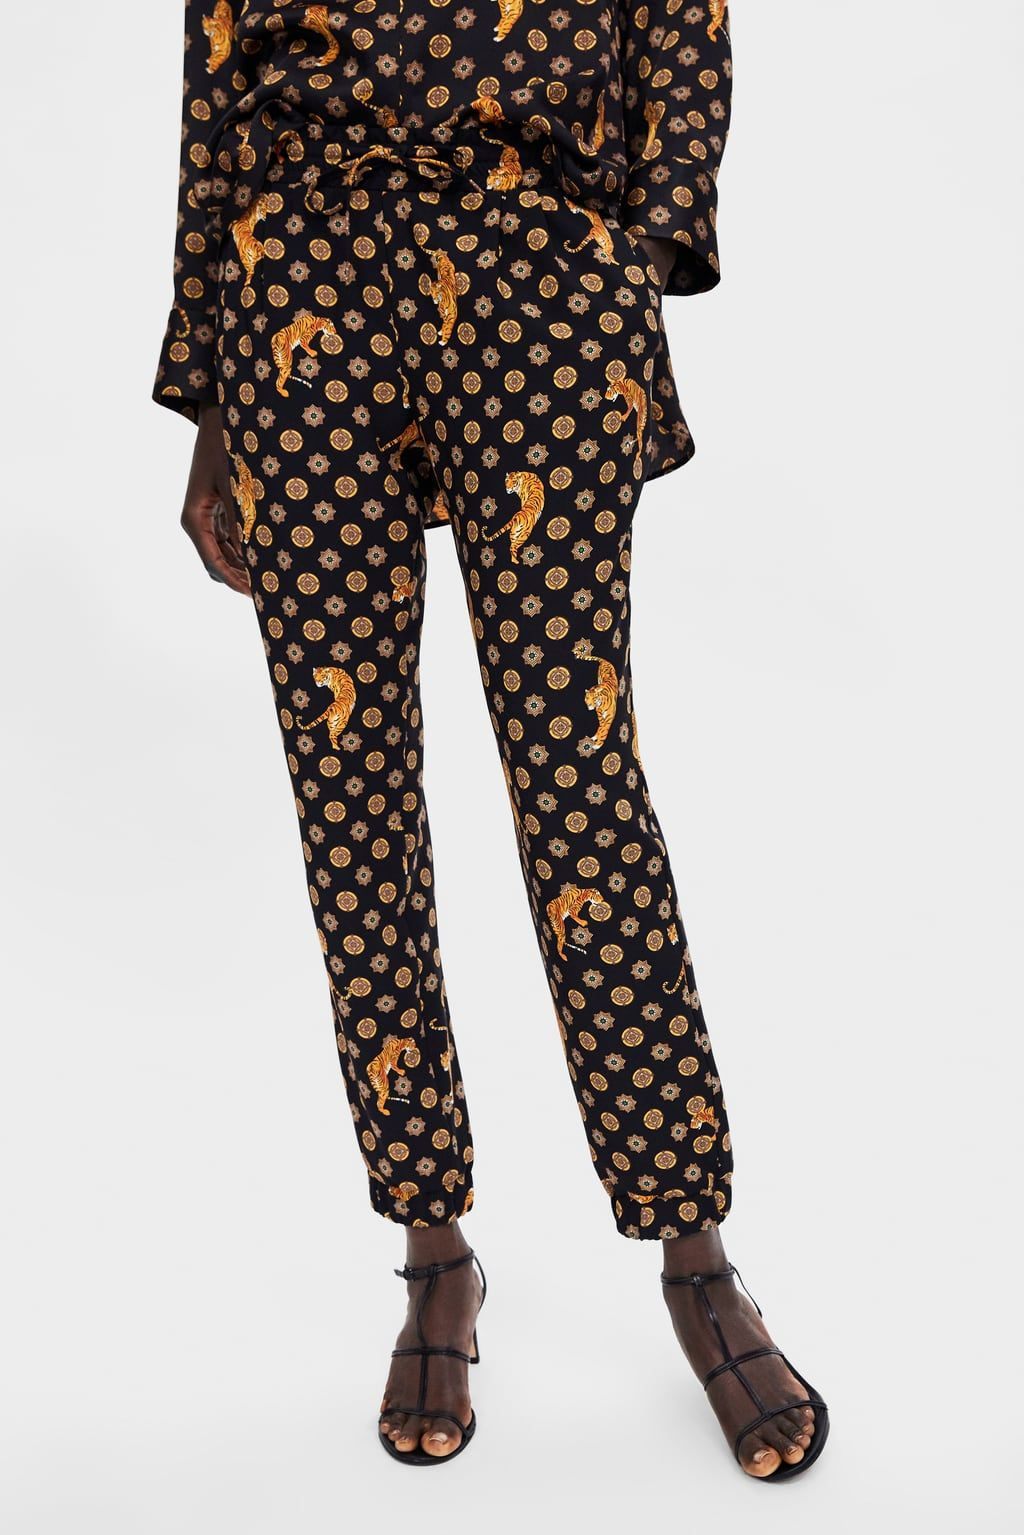 1dfffa06 Image 2 of TIGER PRINTED PANTS from Zara | things i want but am too ...